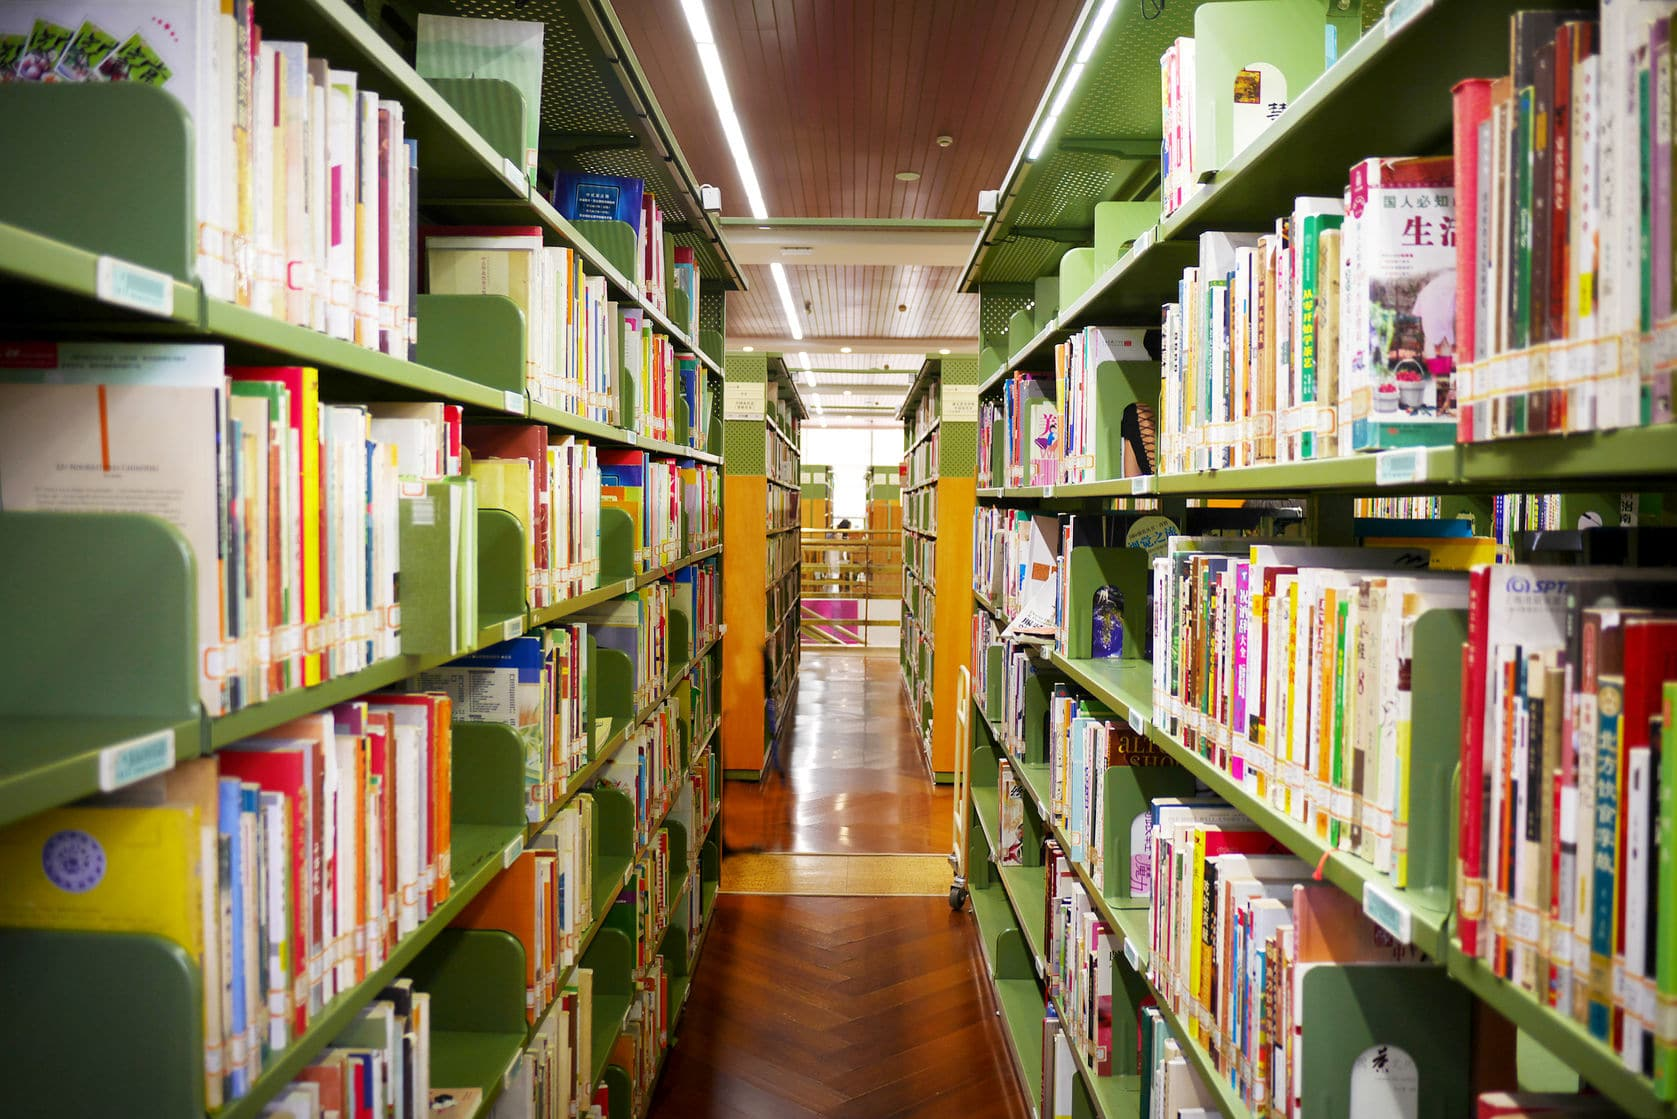 The aisles of the library are filled with amazing books that will keep you entertained for hours. If you're trying to save on cable, you may want to find other sources of entertainment.